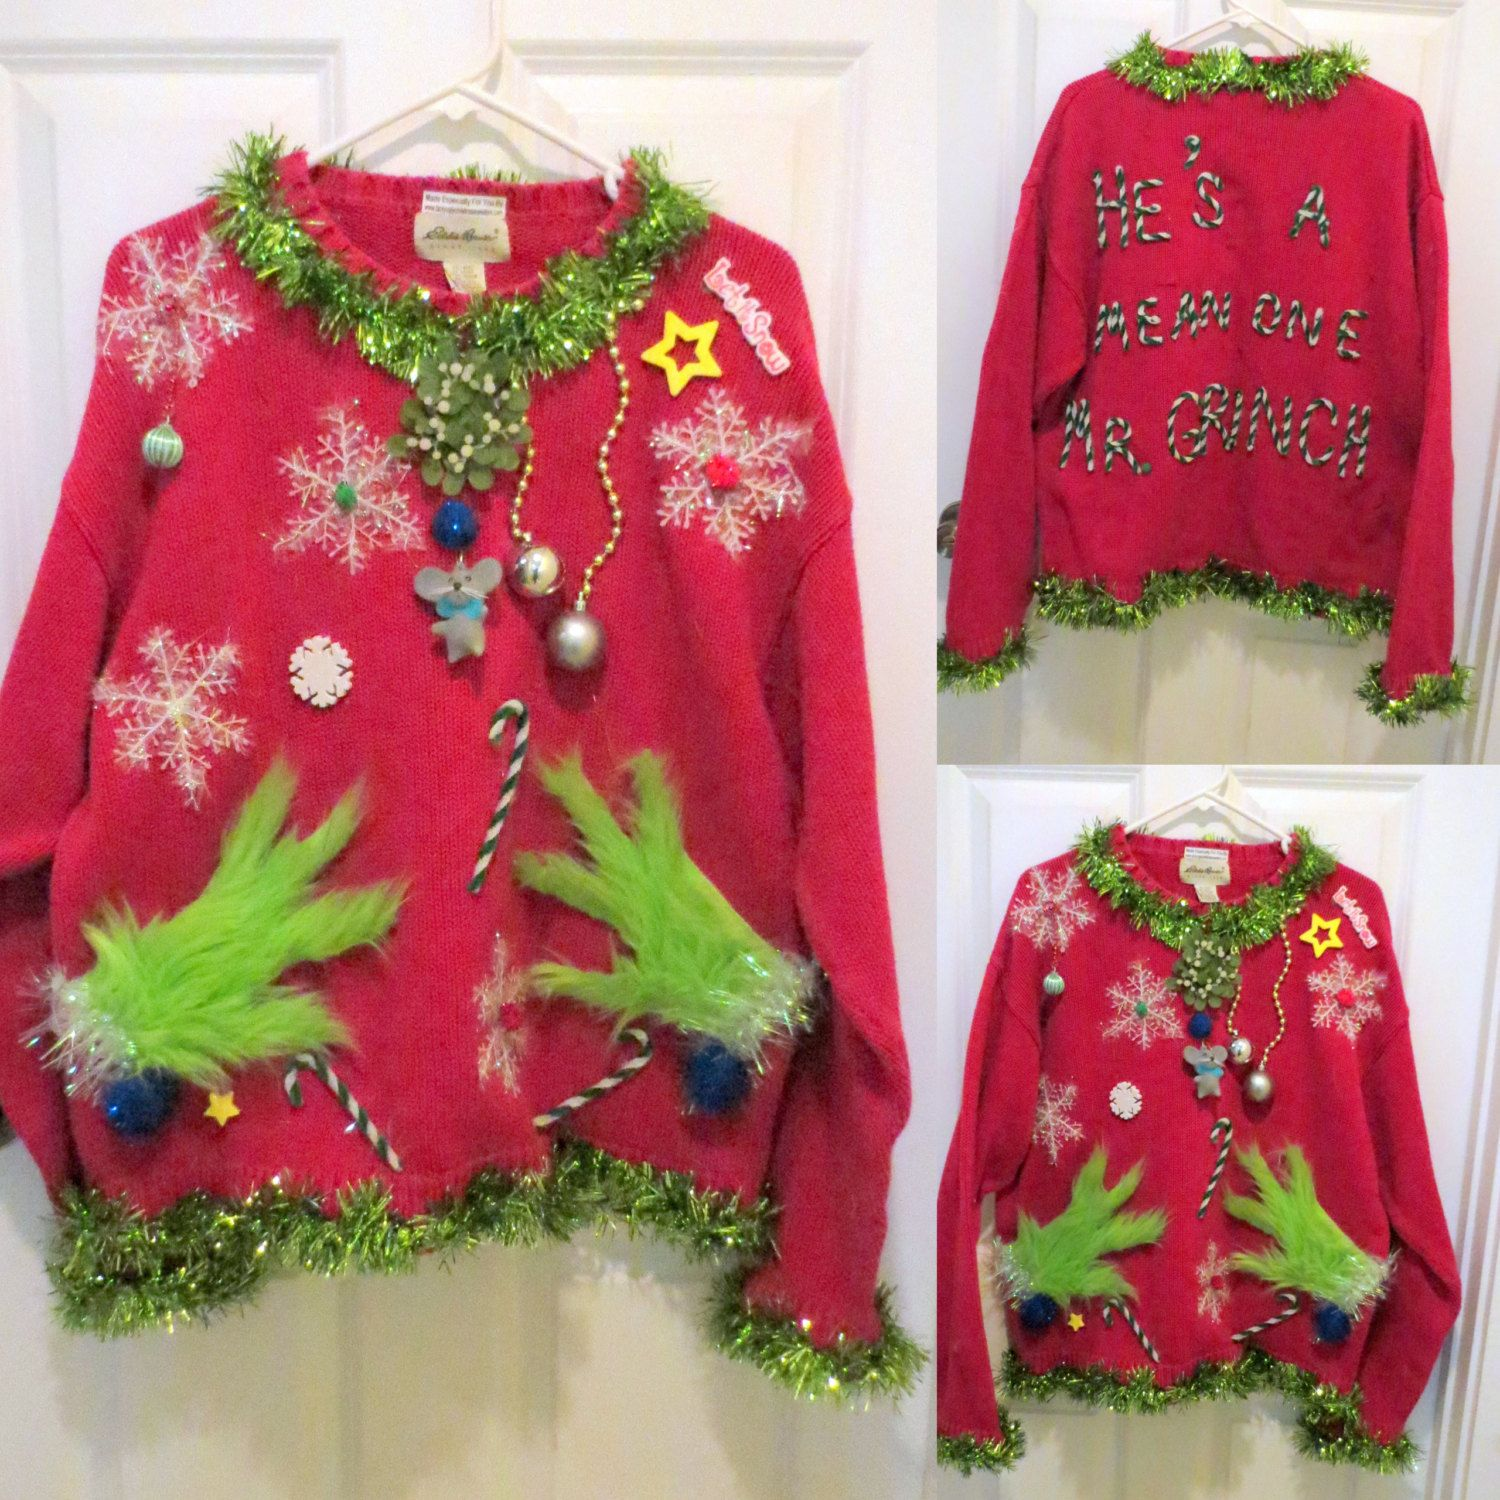 17 best images about grinch sweaters on pinterest sexy christmas trees and whoville christmas - Grinch Ugly Christmas Sweater